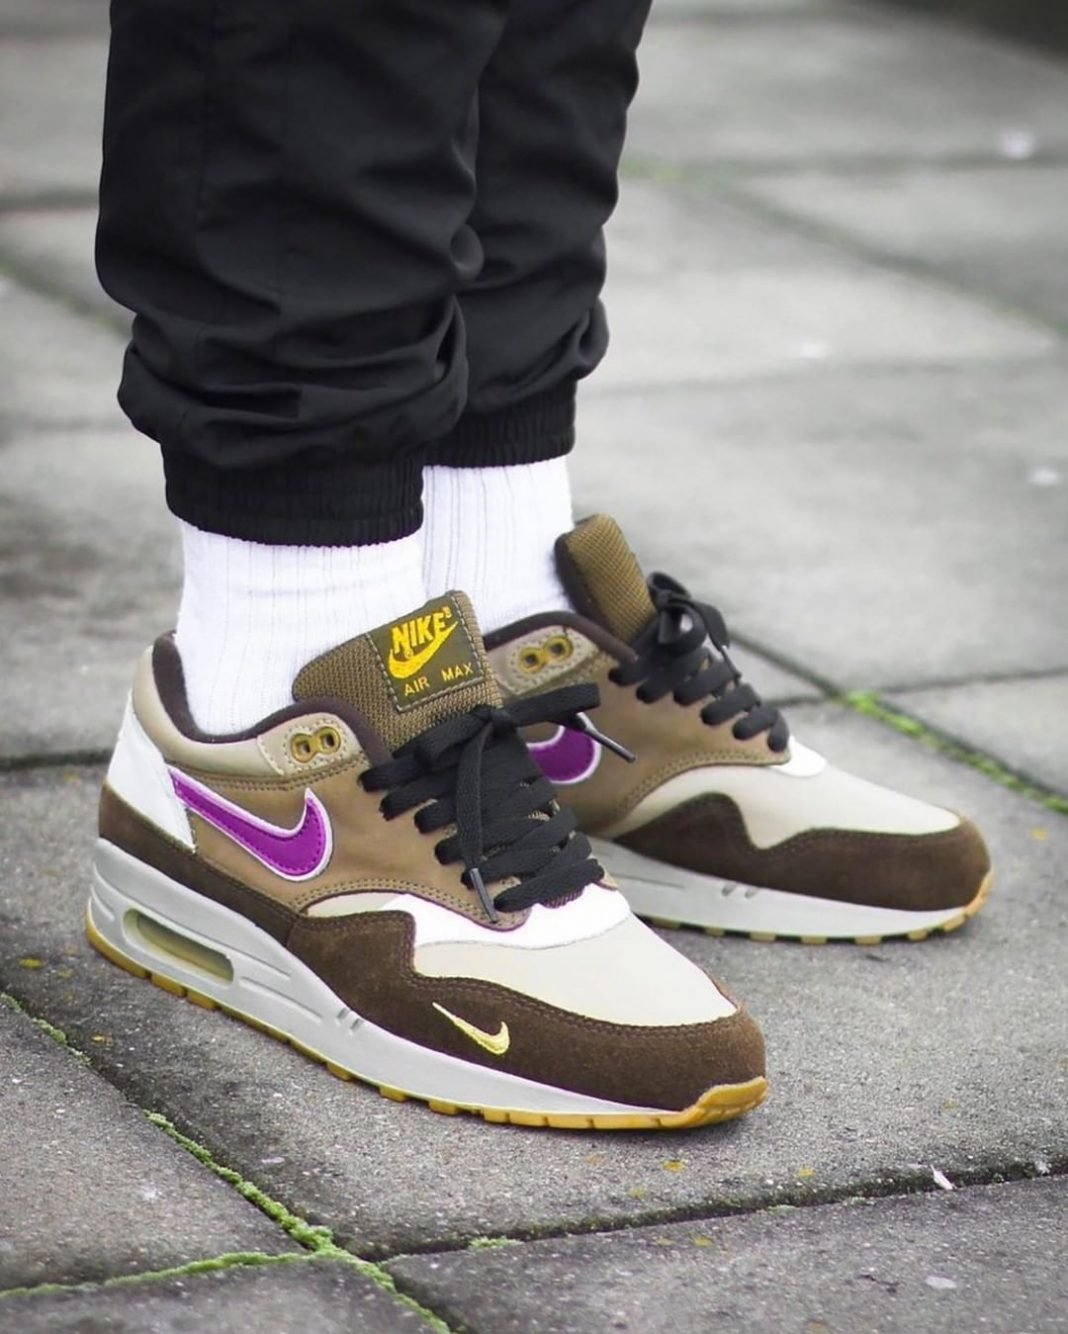 #TBT: The Air Max 1 has received many retros during its storied run, both genera...